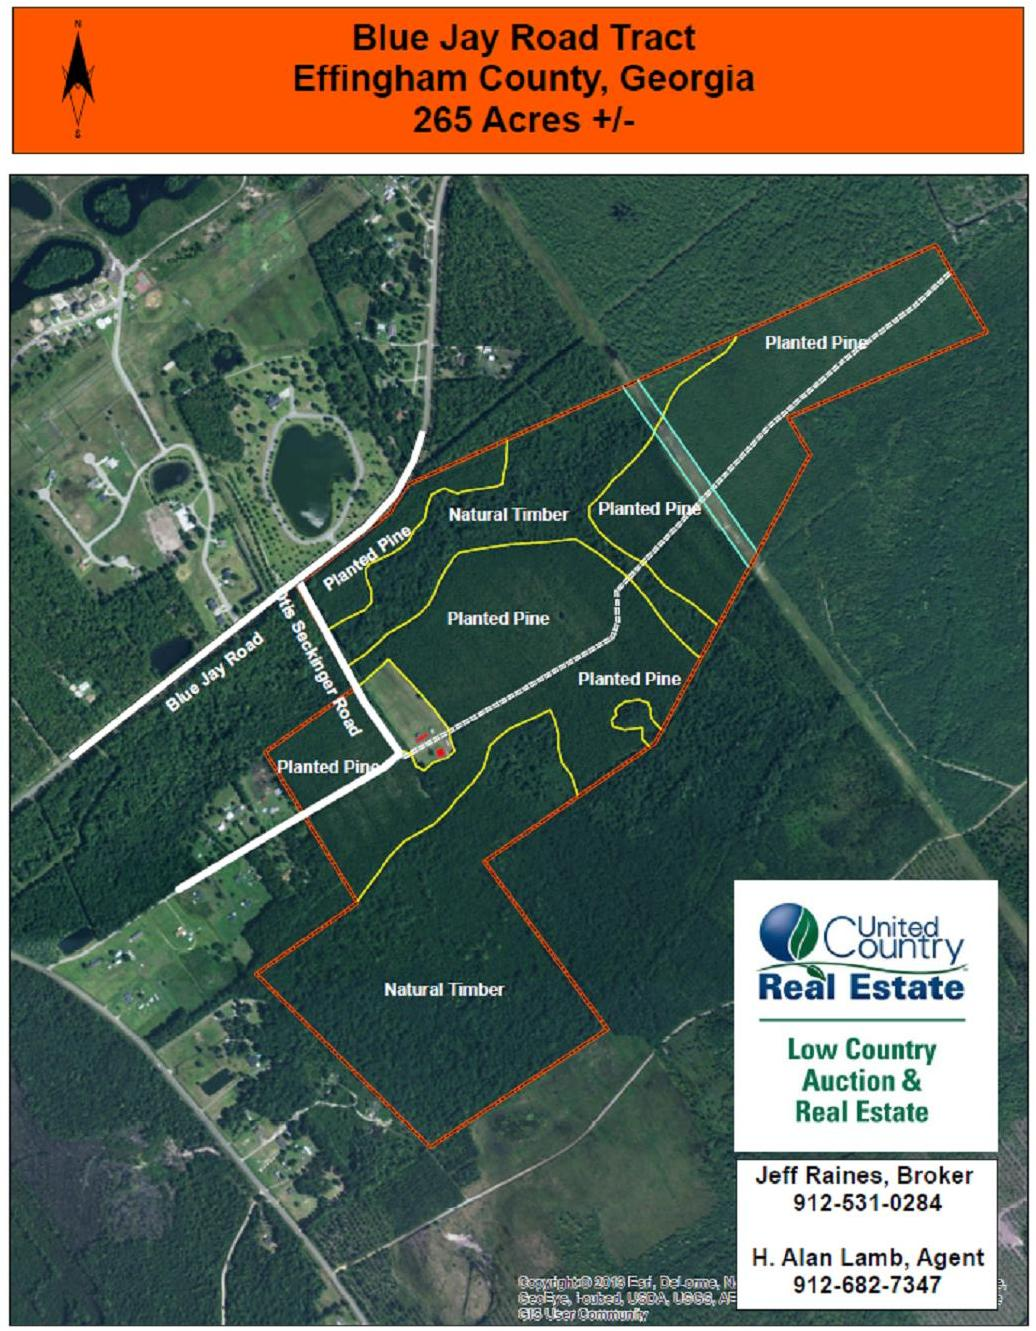 Development Acreage For Sale In Effingham County, GA